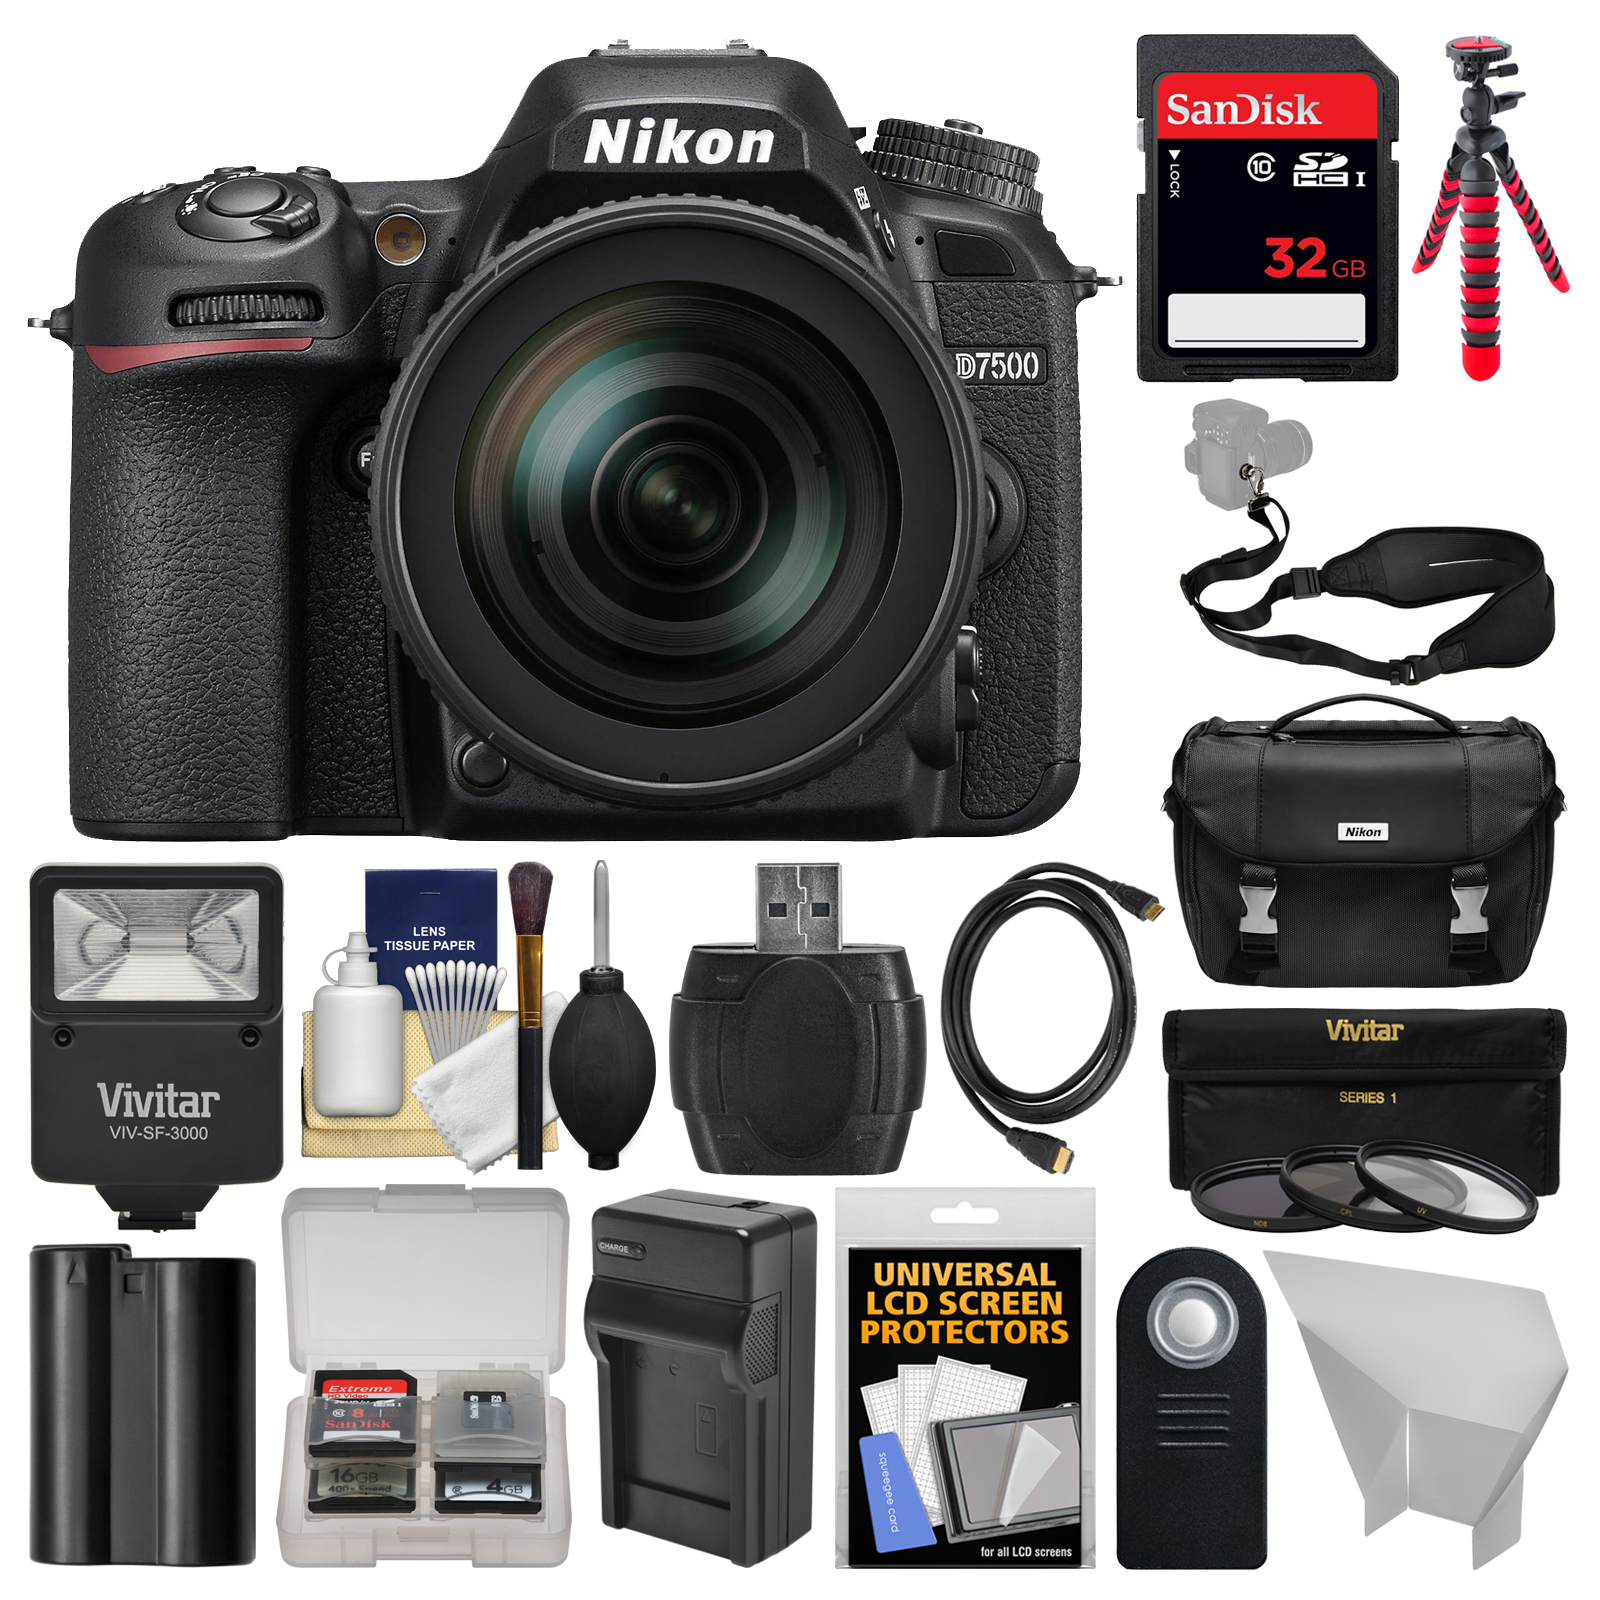 Nikon D7500 Wi-Fi 4K Digital SLR Camera with 18-300mm VR DX Lens, Case & 32GB Card + Flash + Battery & Charger + Tripod + Strap + 3 Filters Kit